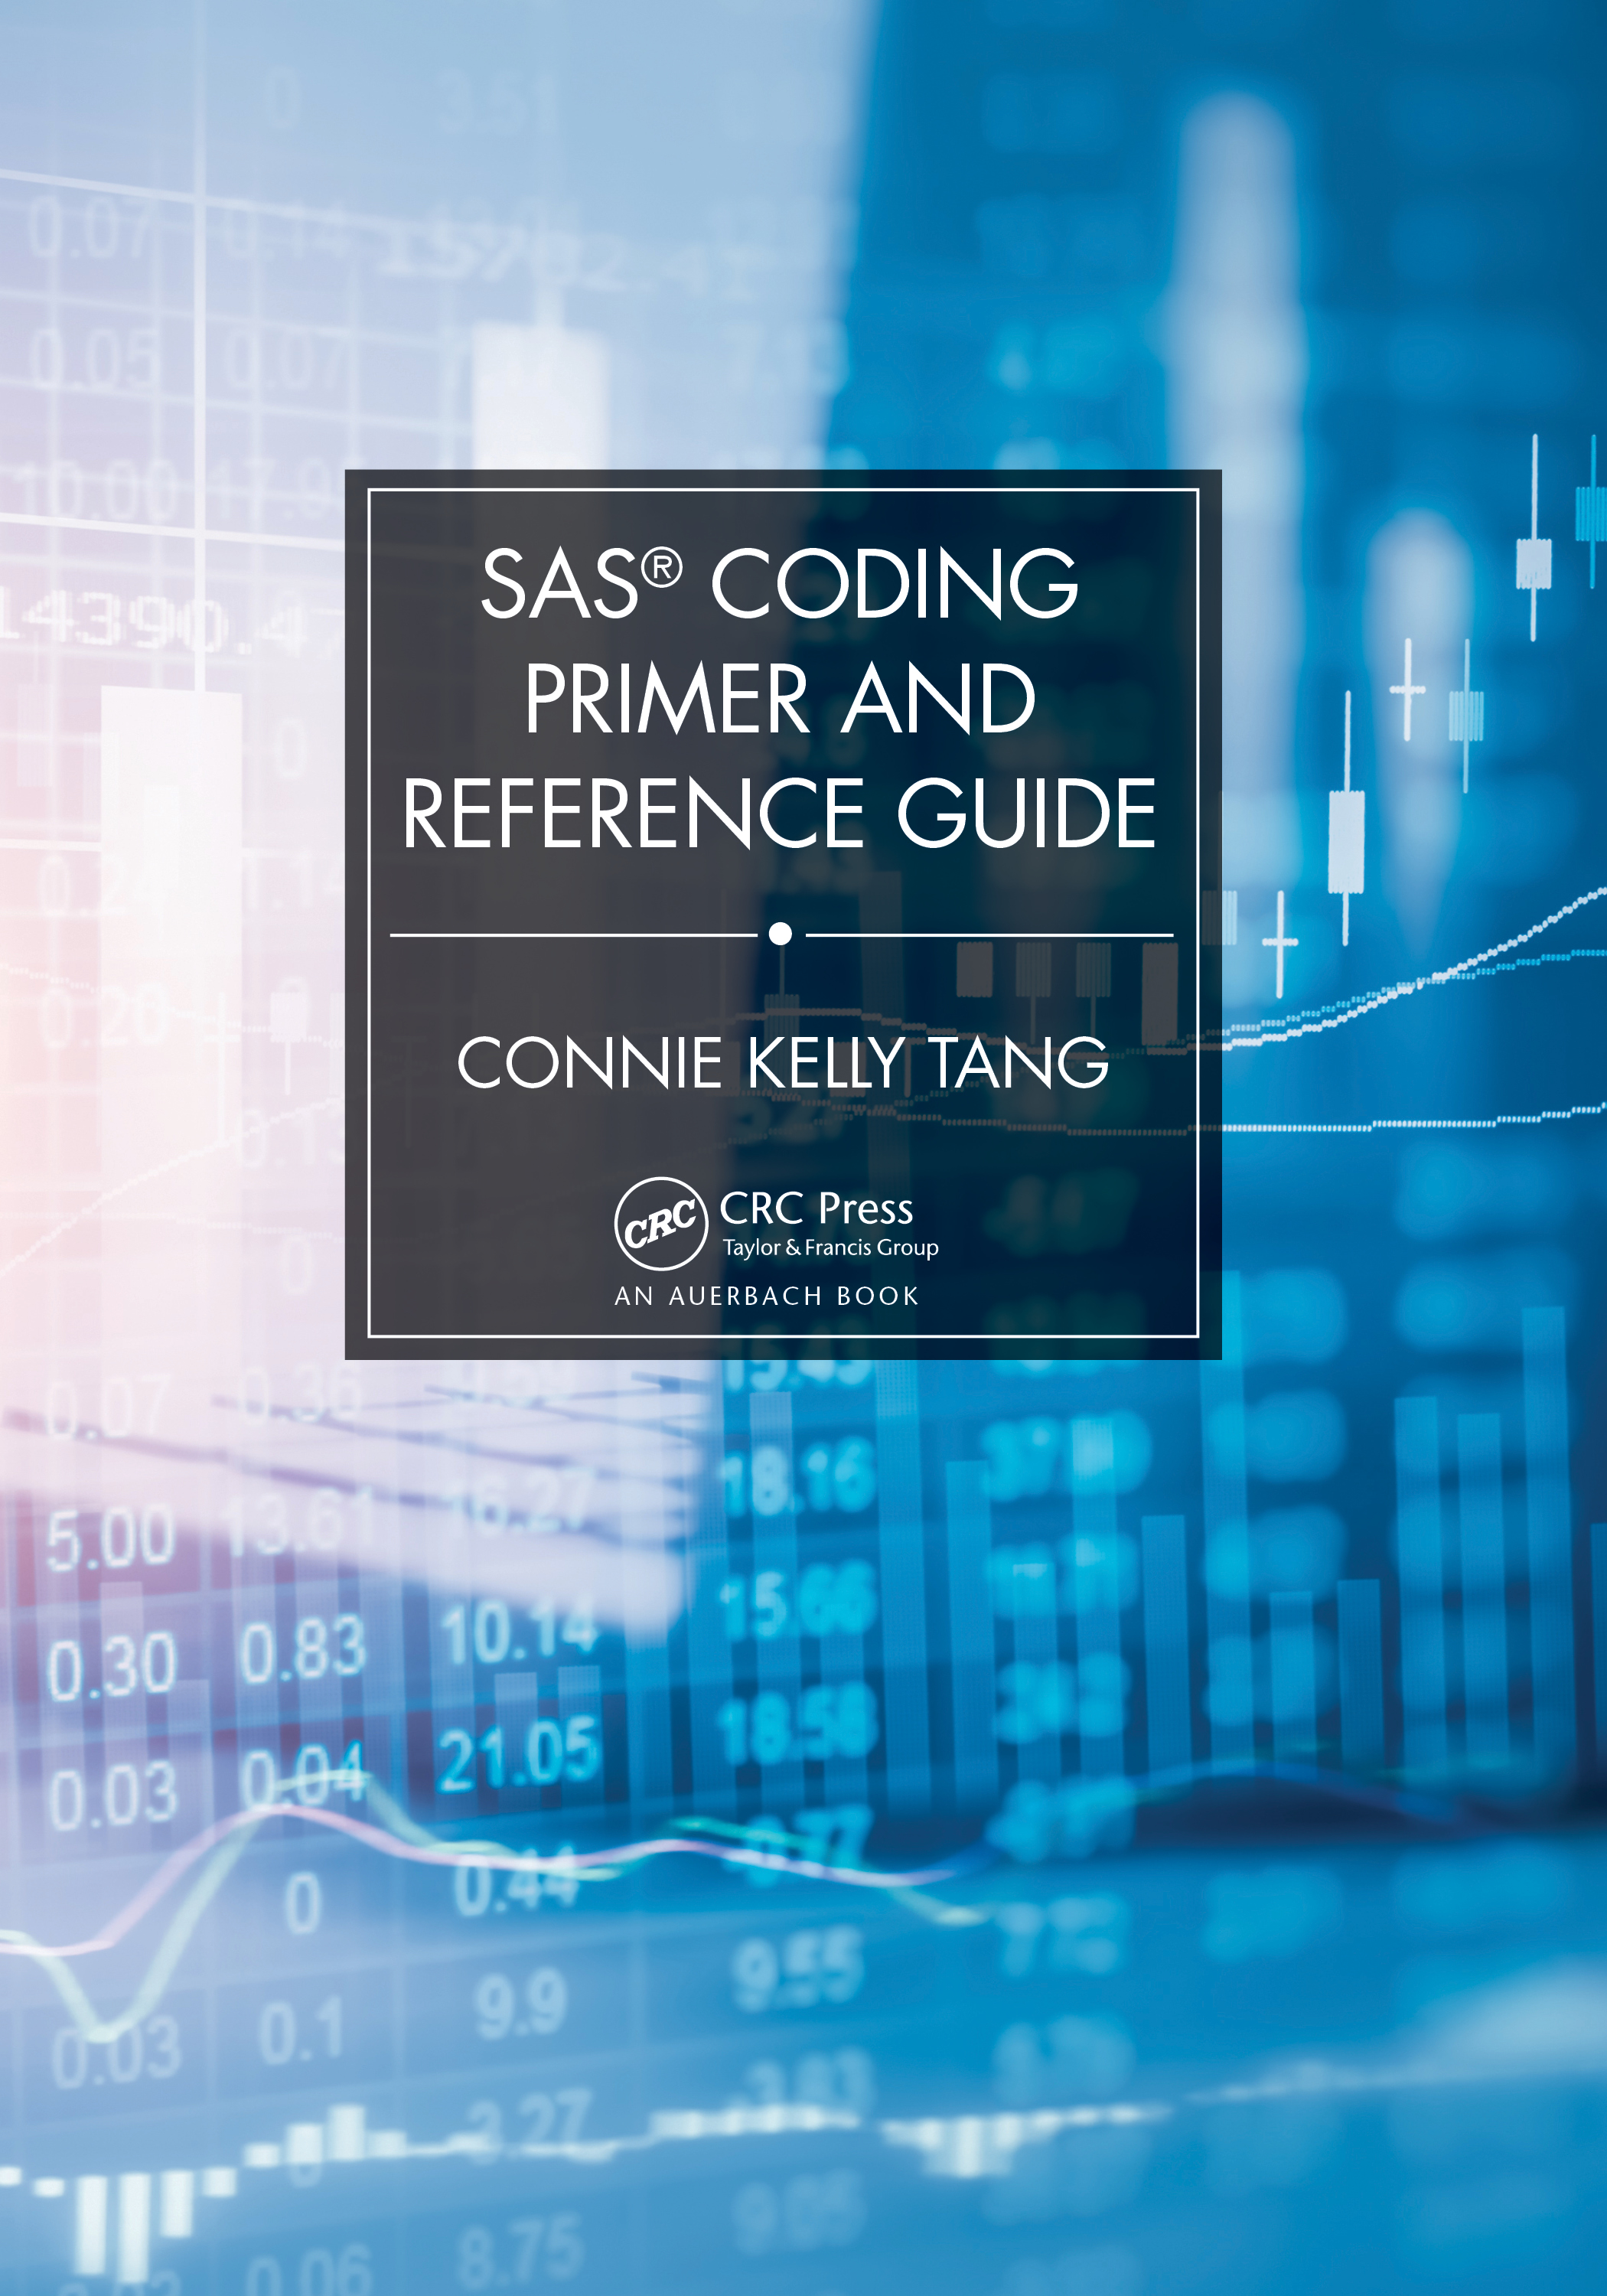 SAS® Coding Primer and Reference Guide book cover